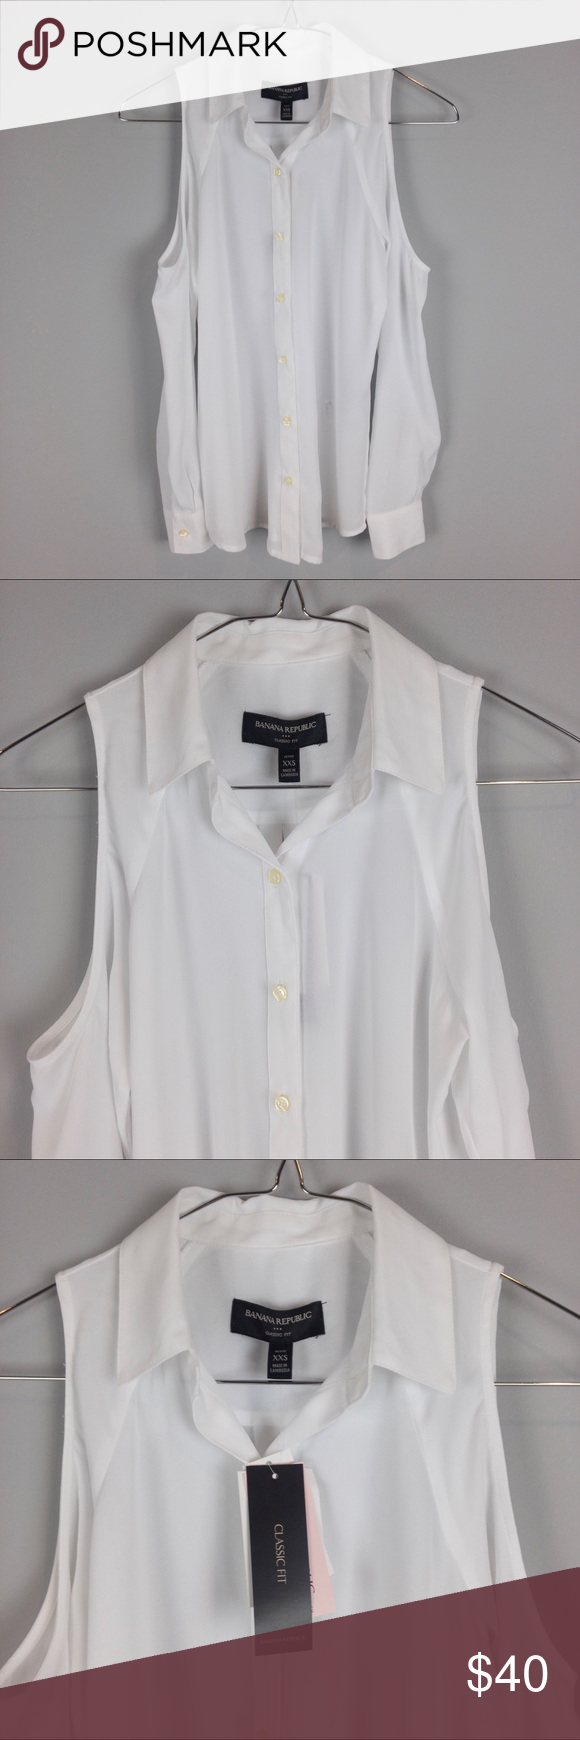 60f51367c3558 Banana Republic Cold Shoulder Blouse White NWT Cold Shoulder Button Up Long  Sleeve Blouse White.